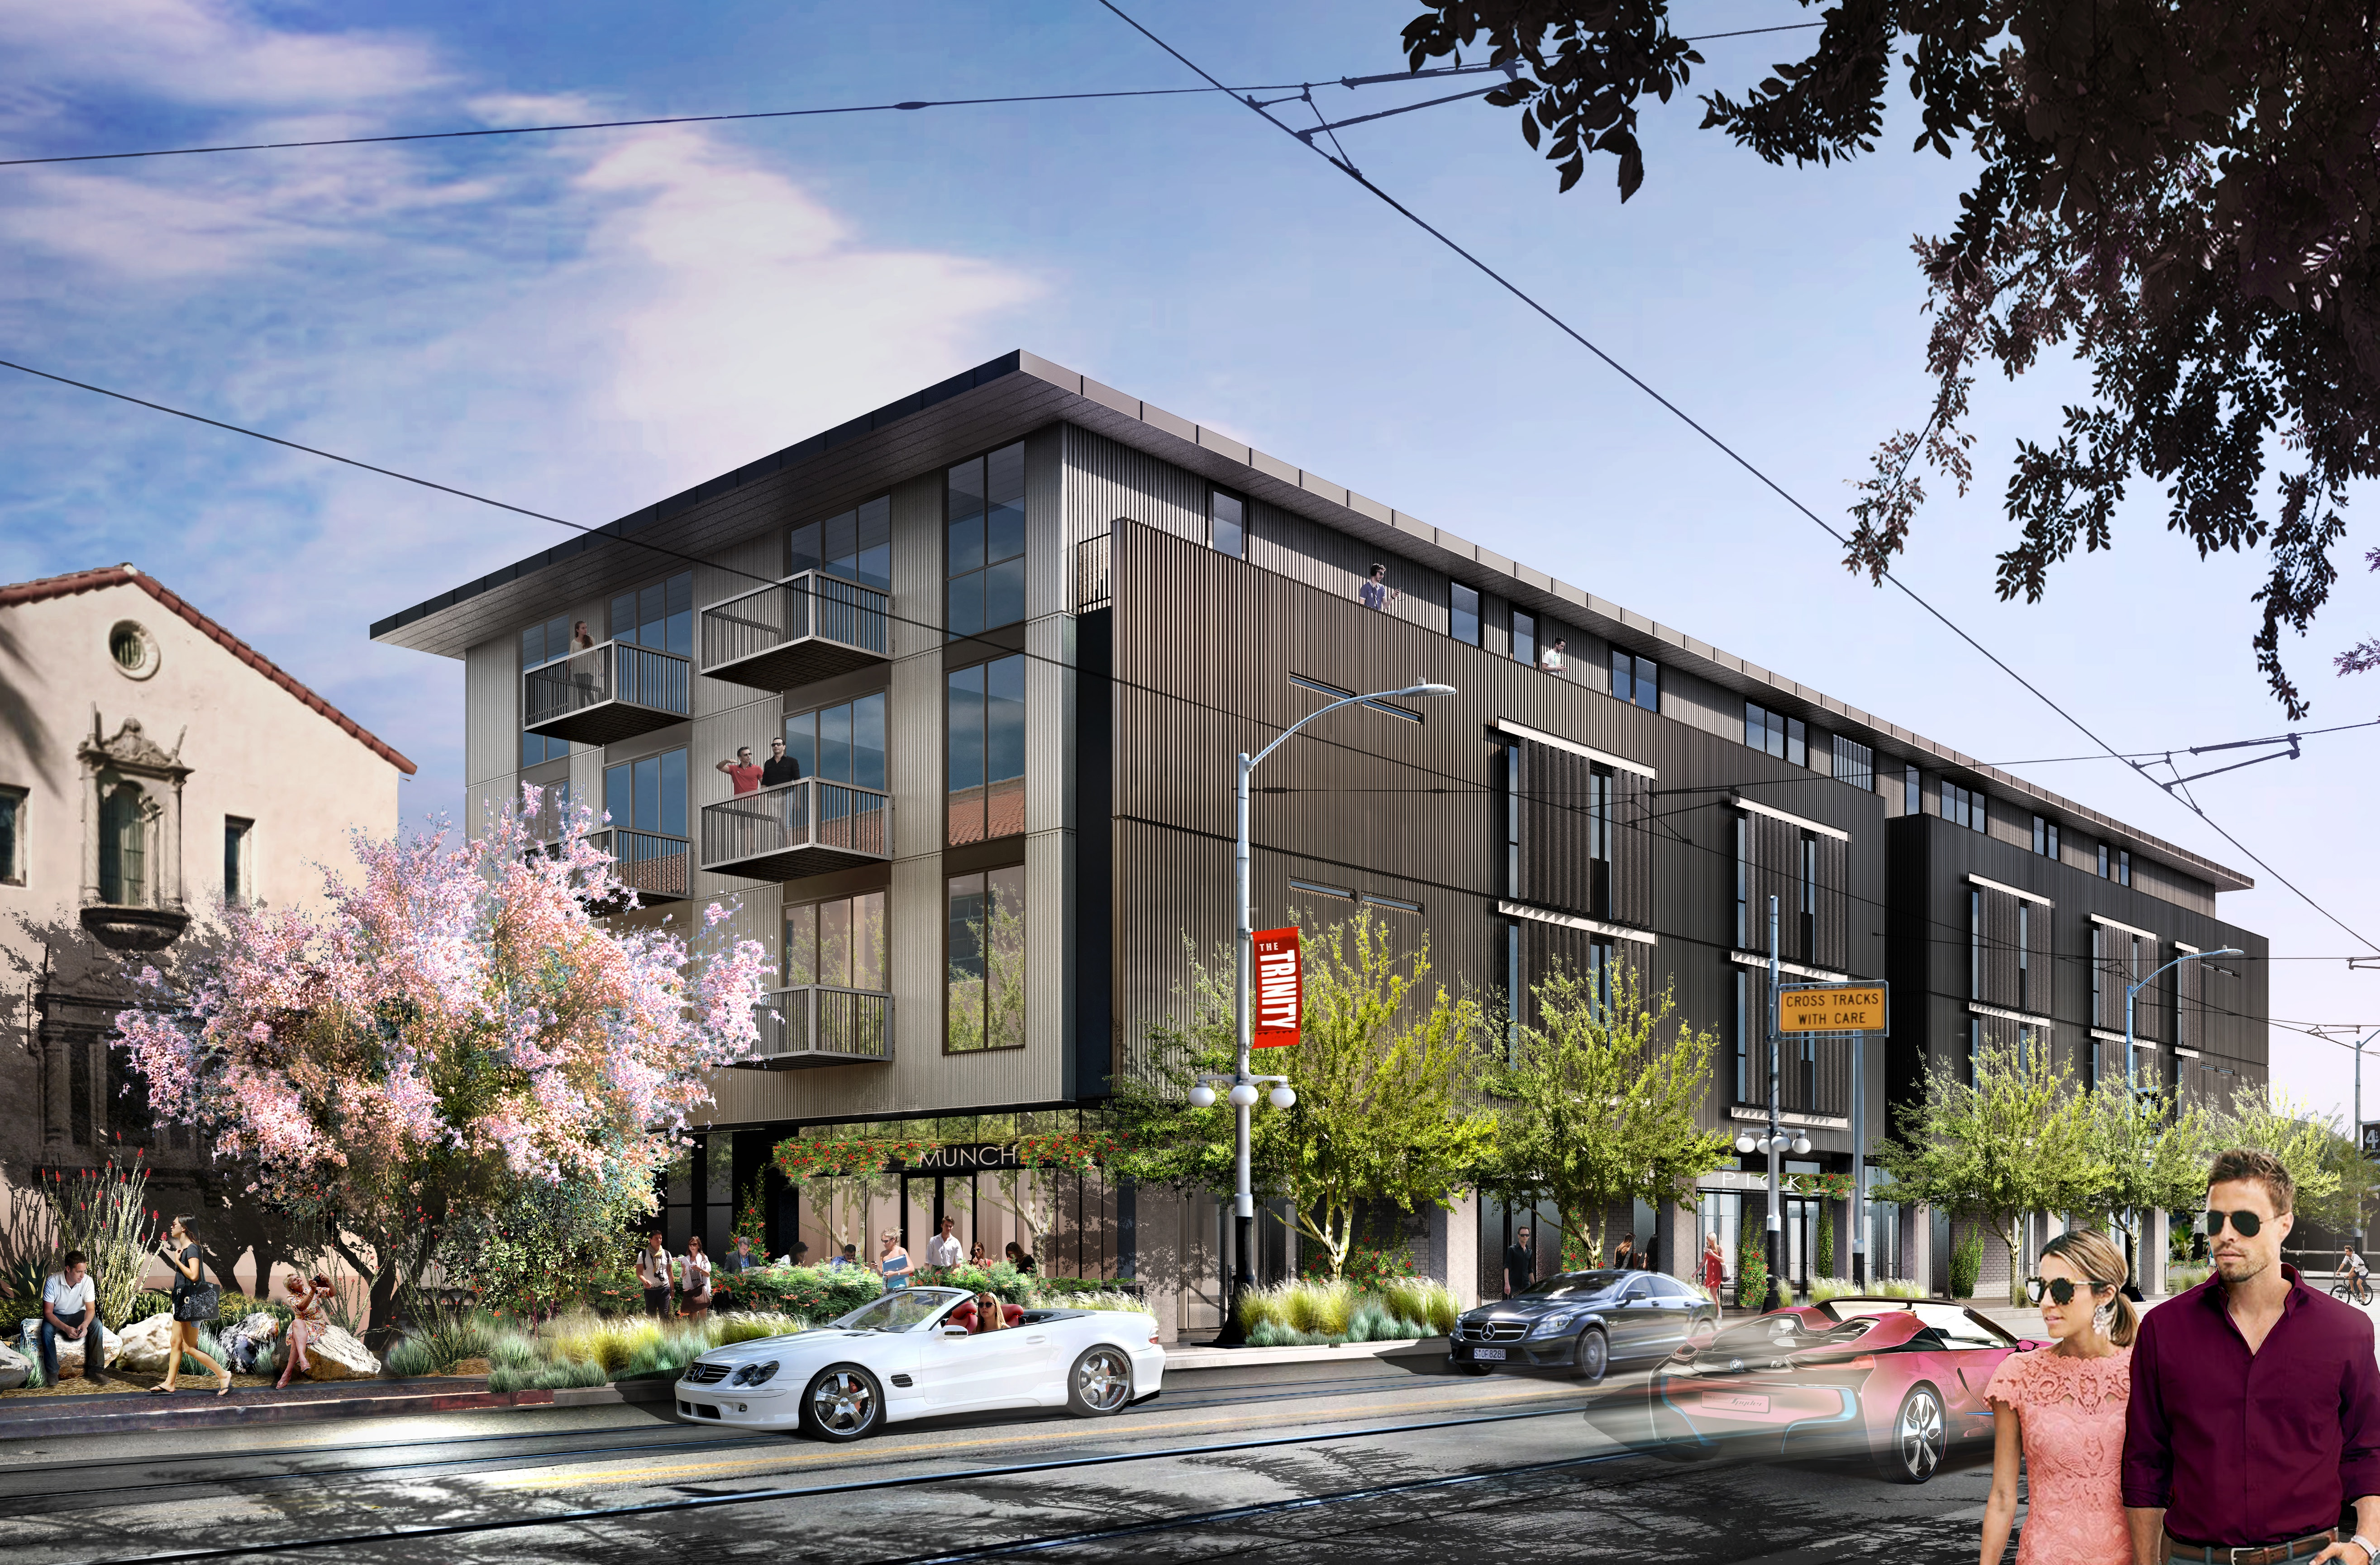 New 7 Story Mixed Use Development Proposal For 4th Avenue